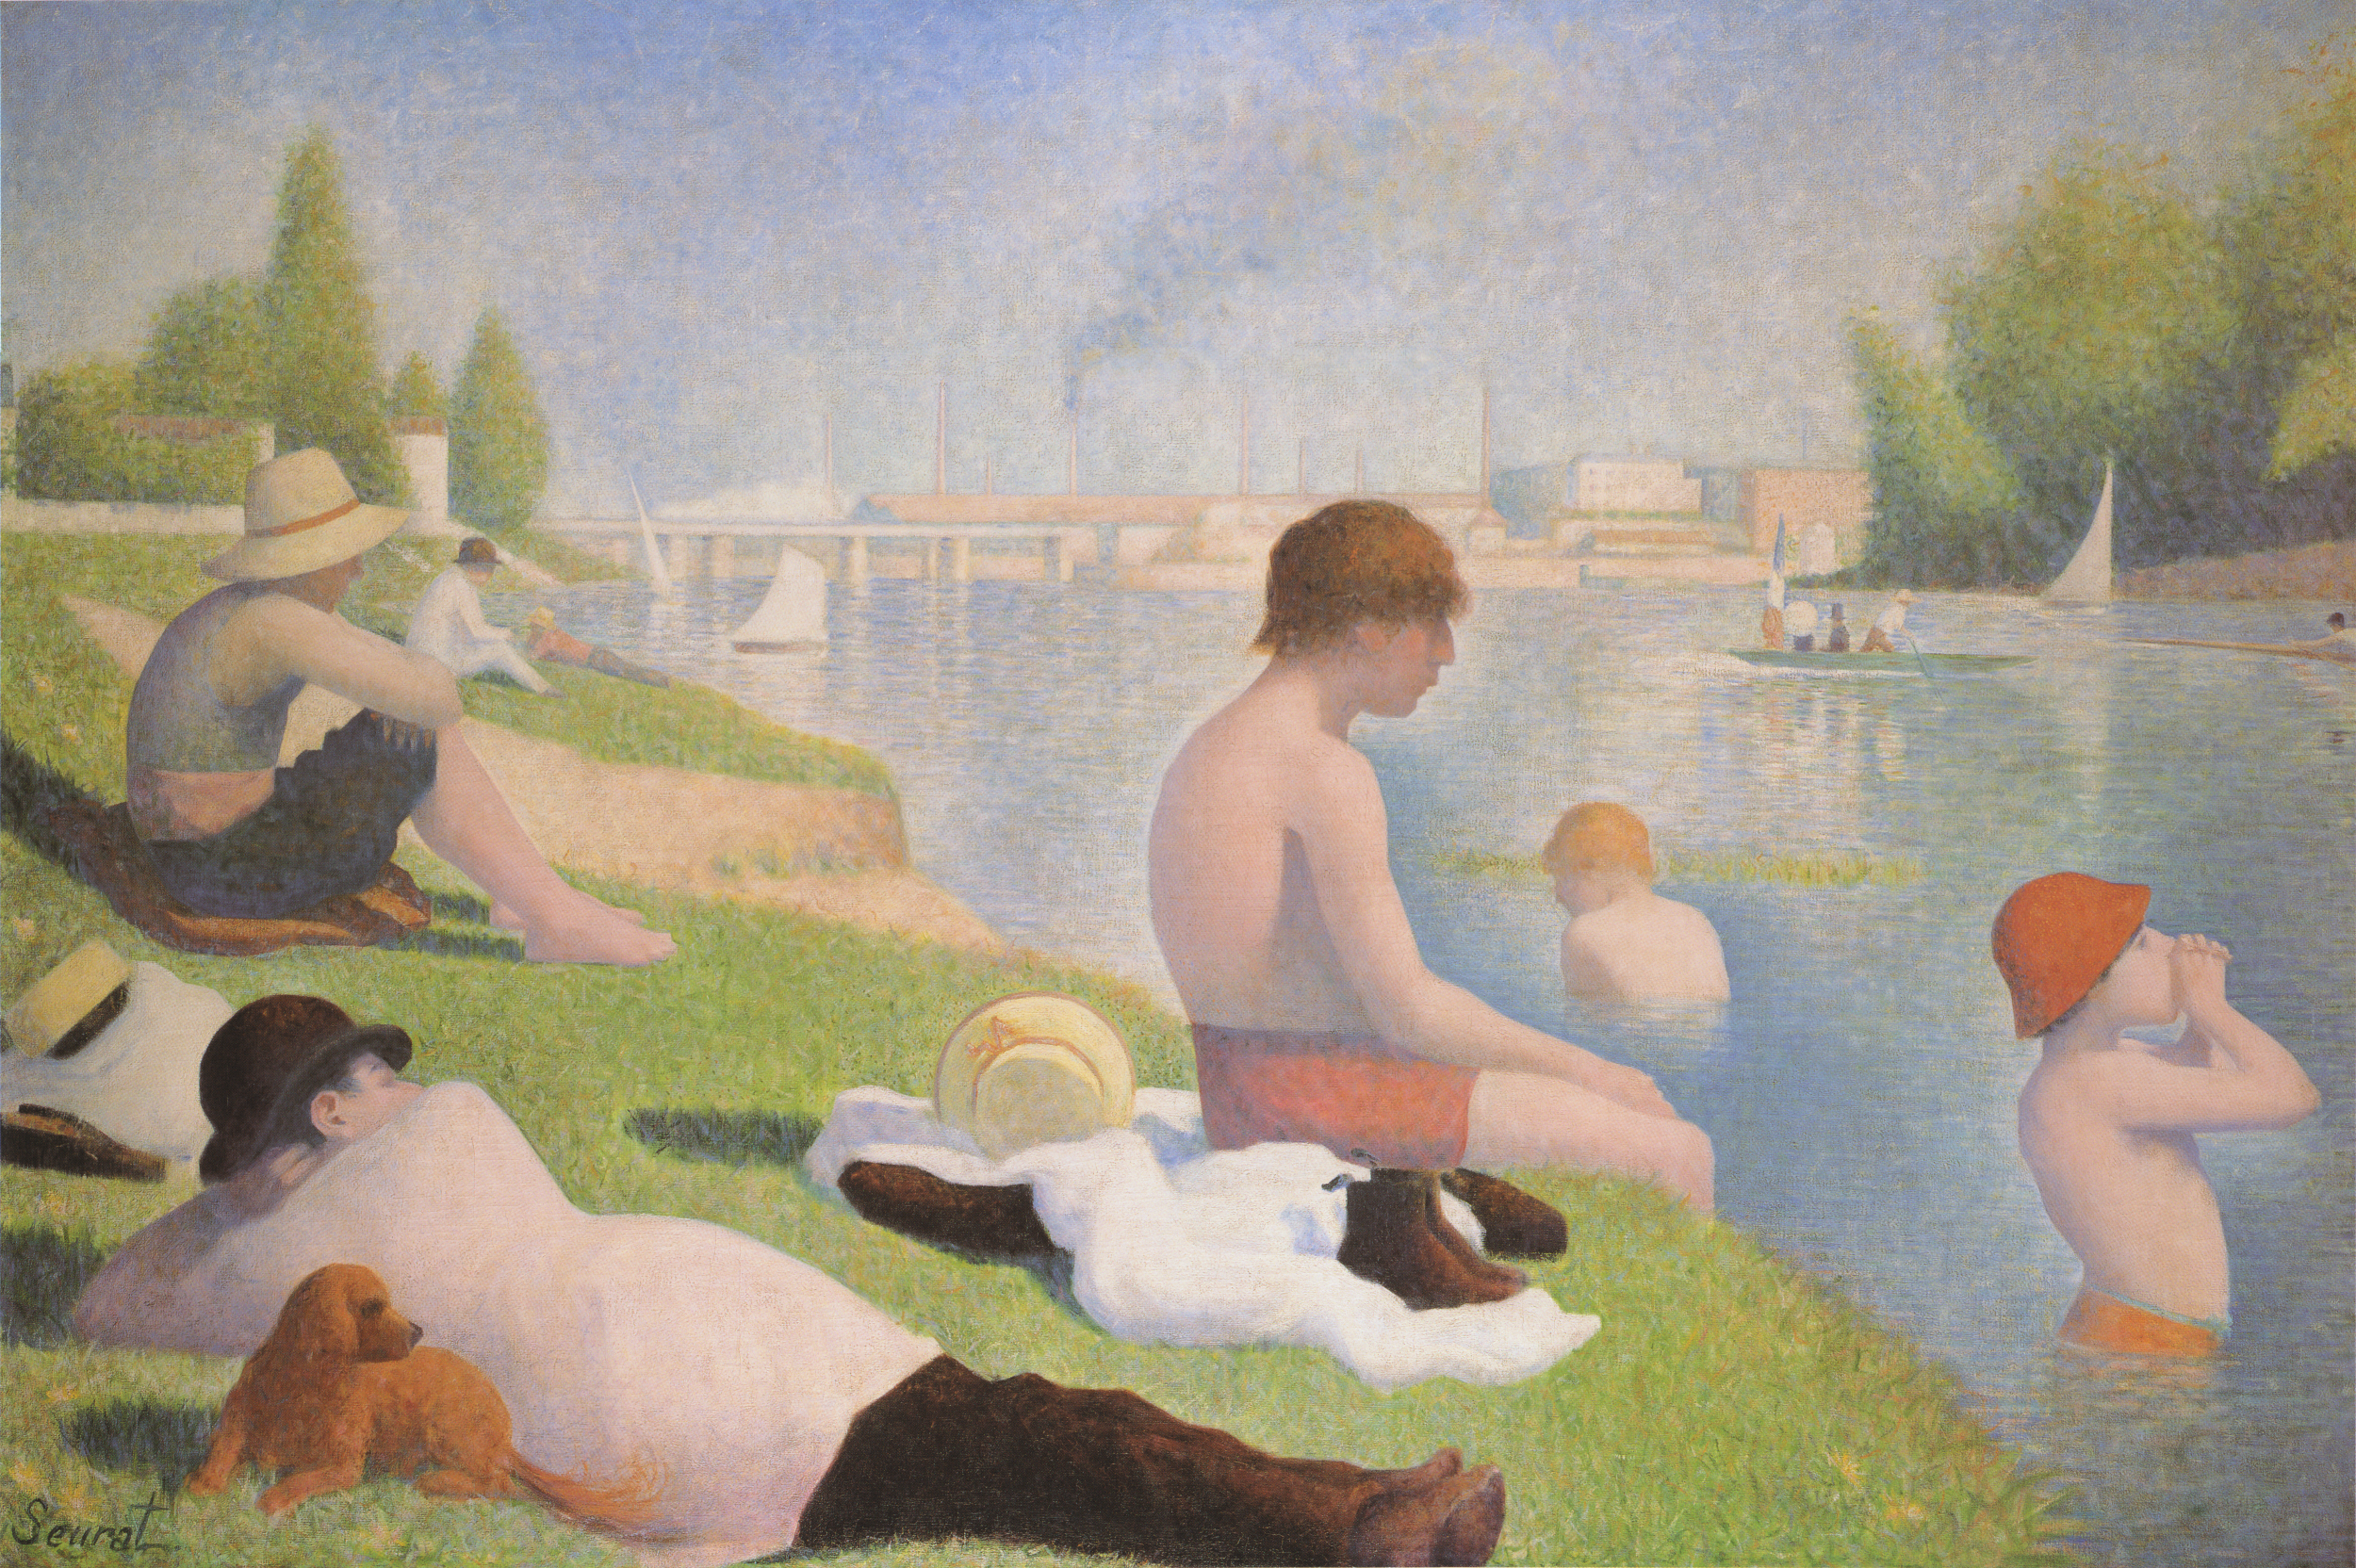 Beautiful Seurat painting.